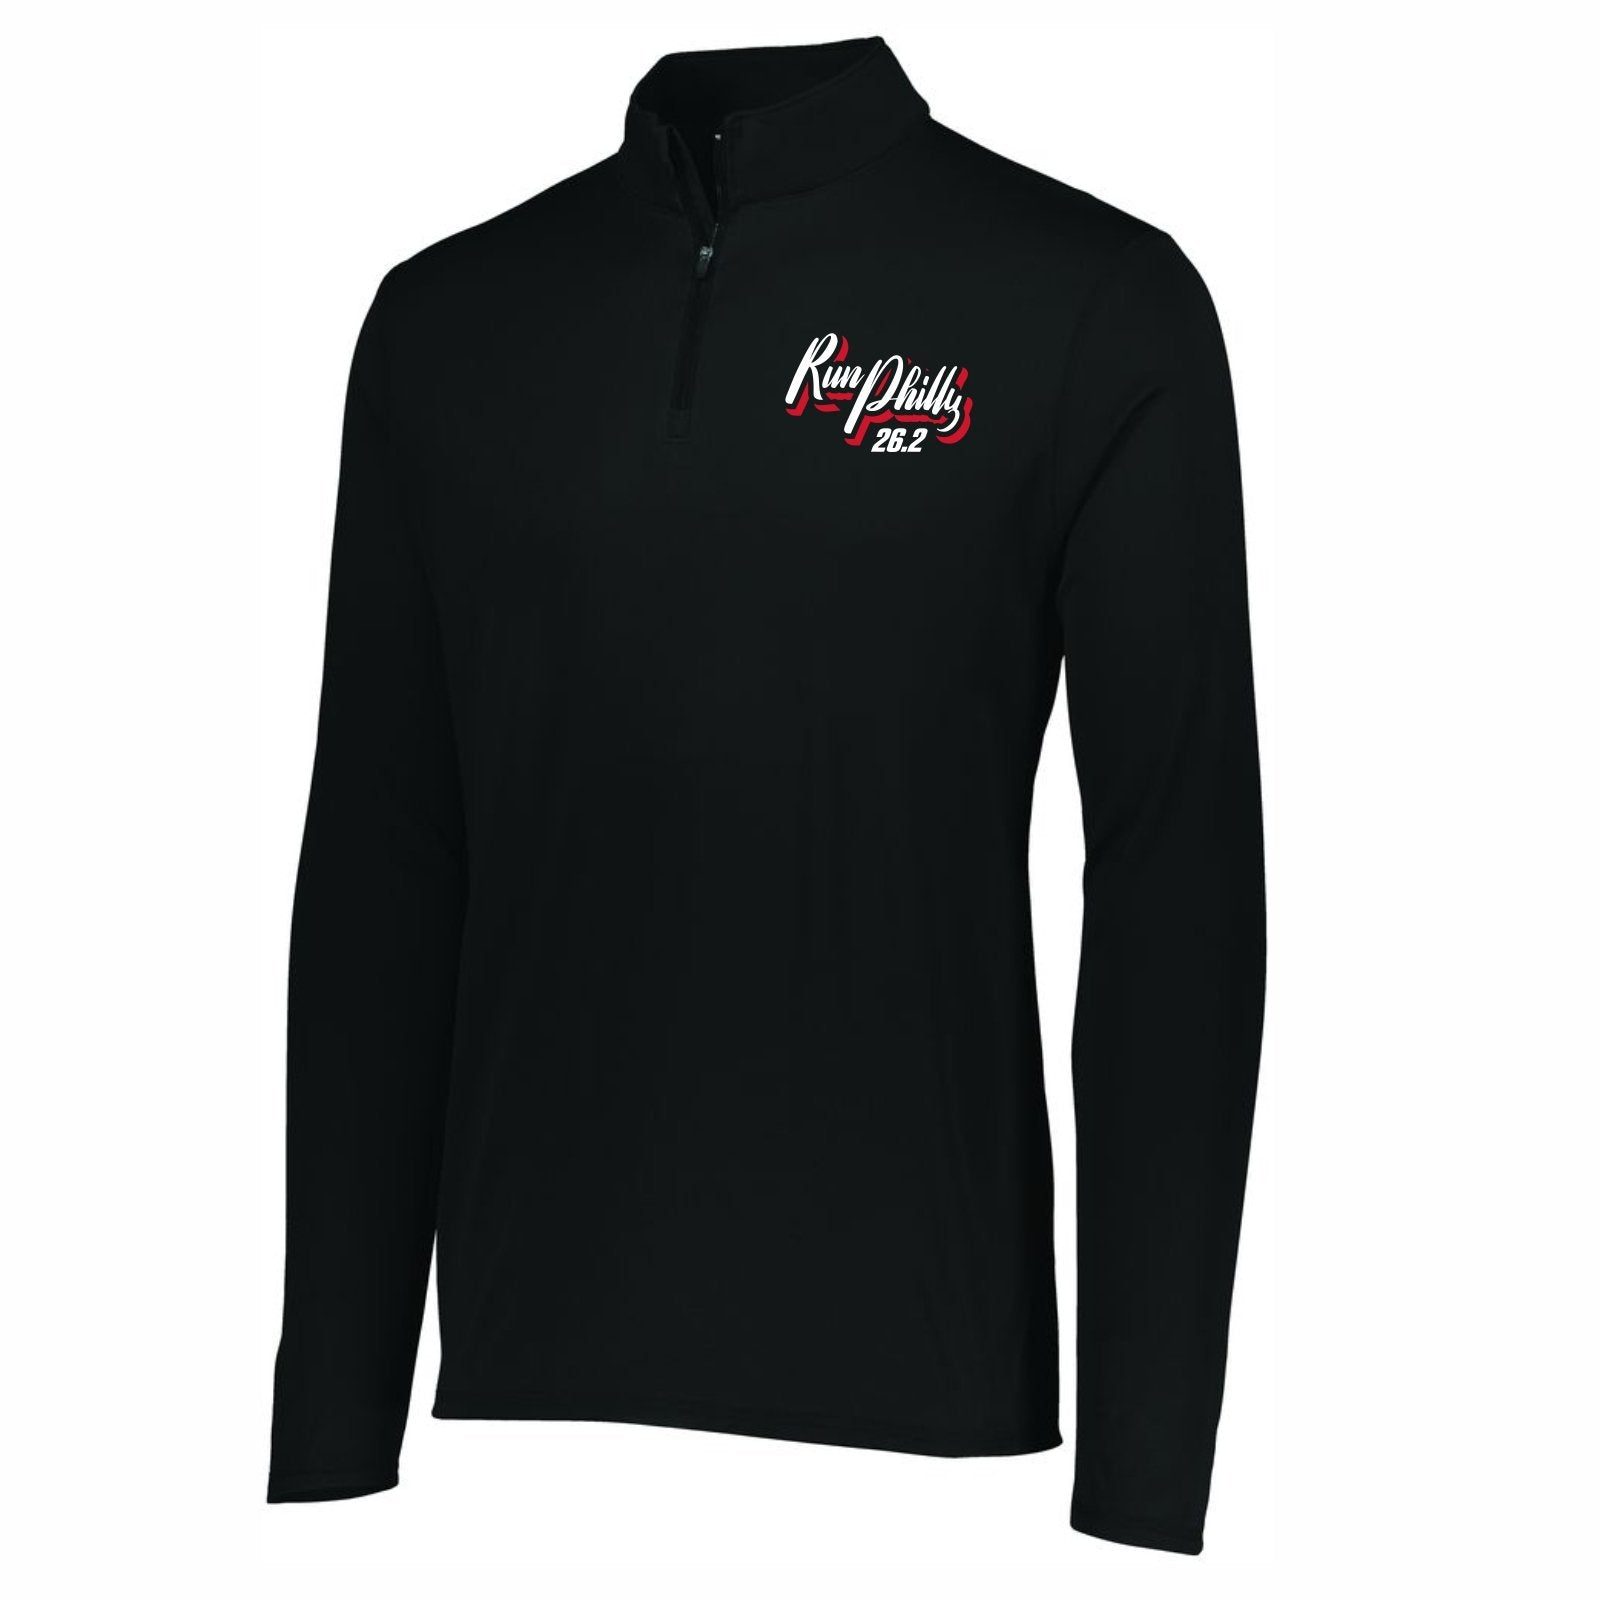 Men's Tech 1/4 Zip -Black 'AACR 2019 Course Design' - AACR Philadelphia Marathon